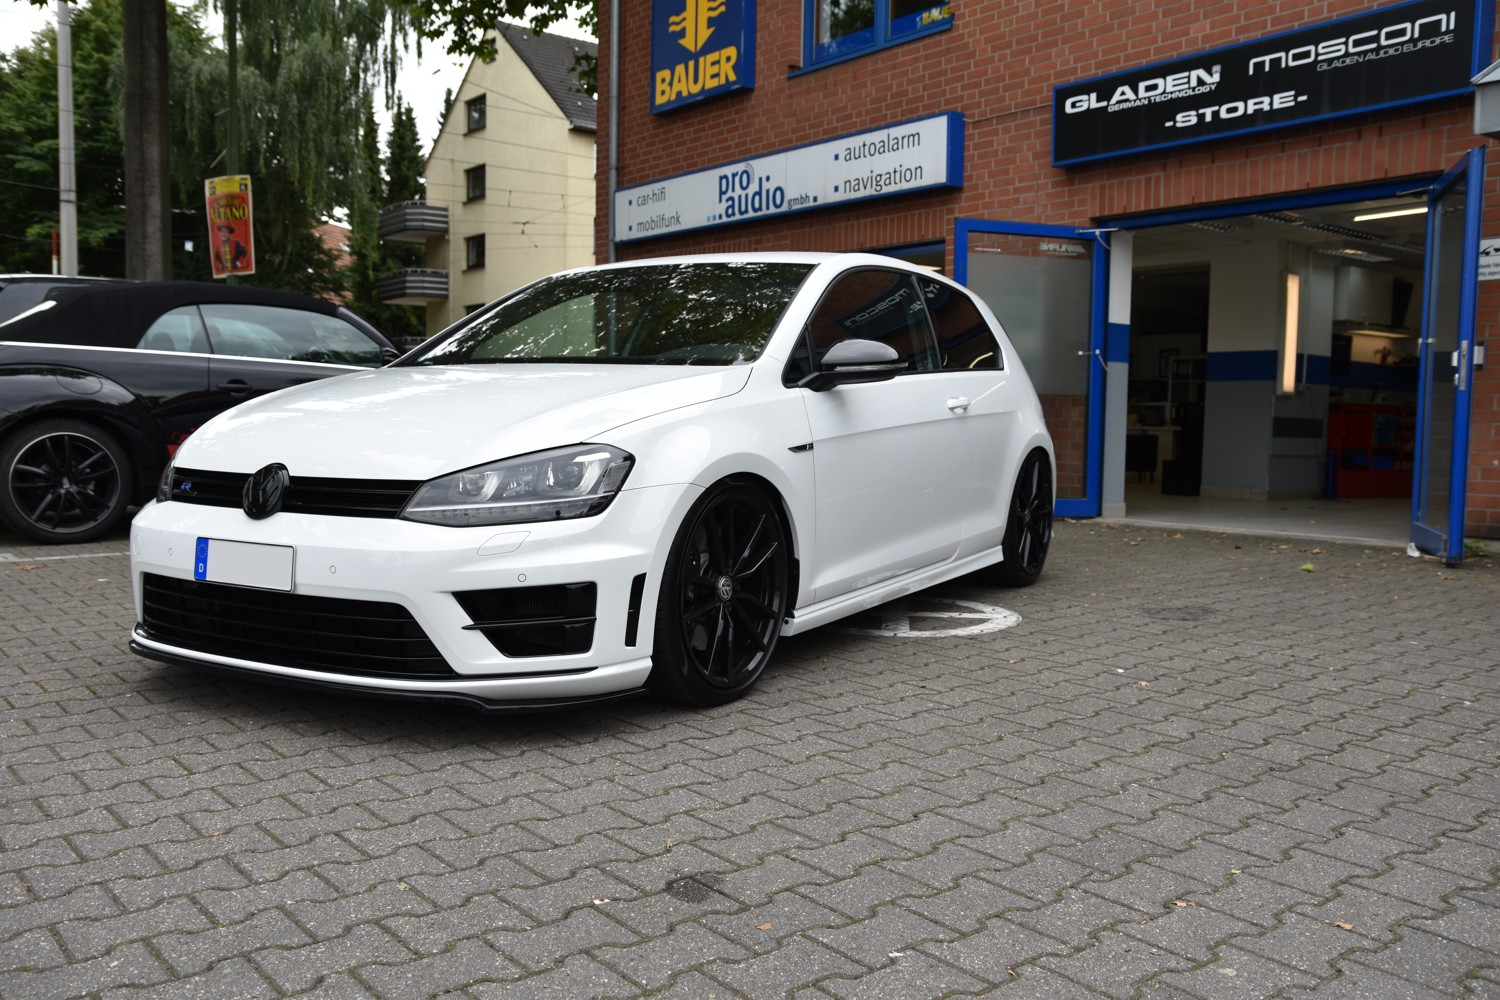 Golf7R Gladen Audio Mosconi Auto 01